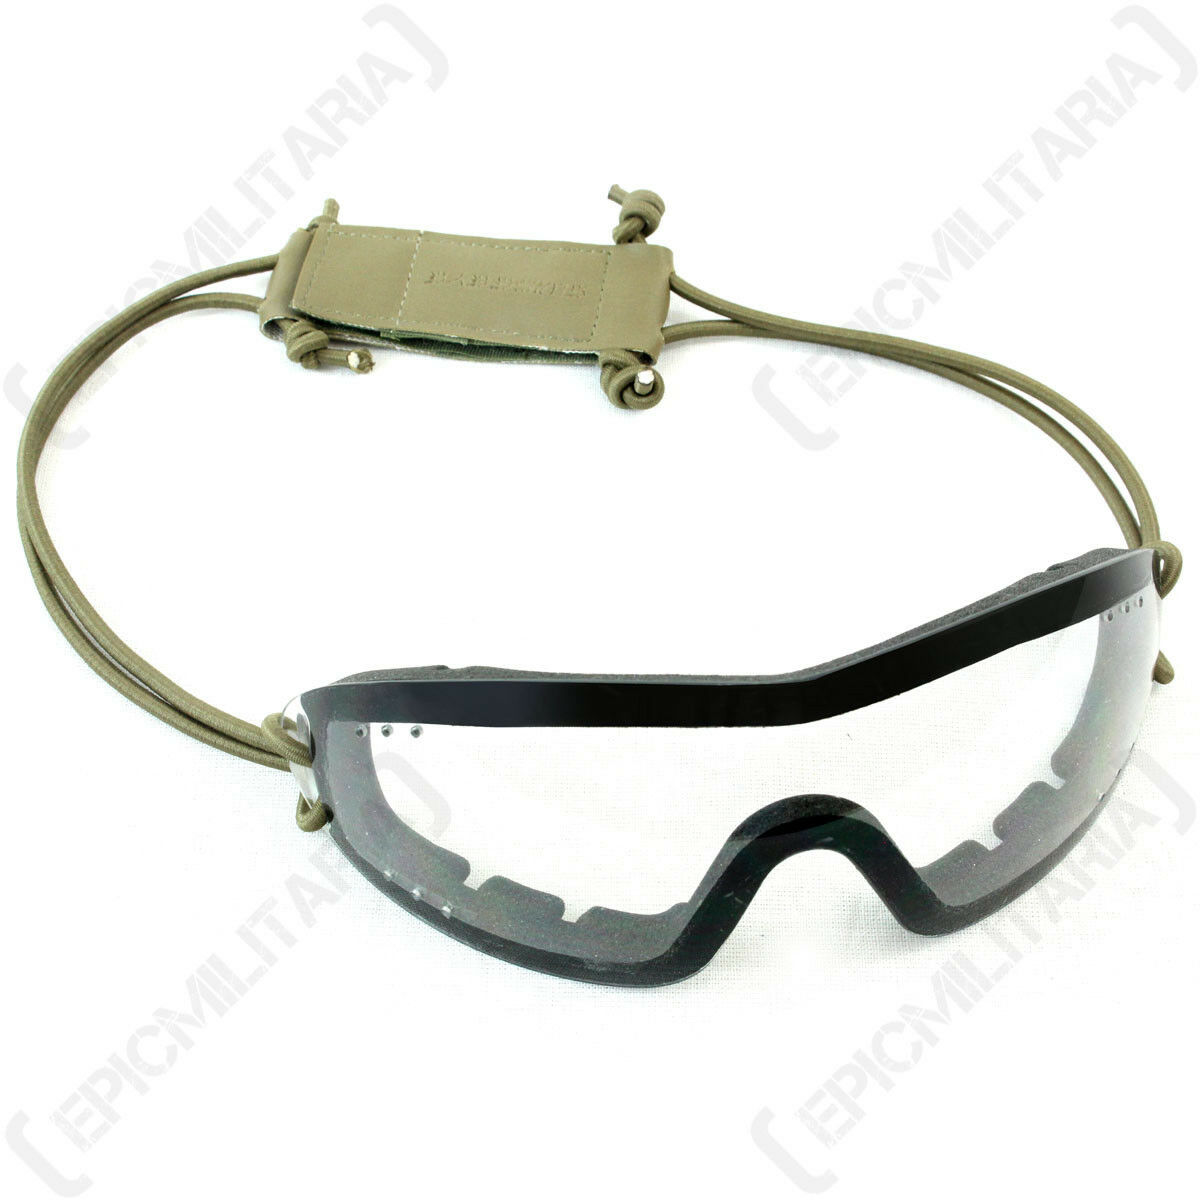 SWISS EYE 'Infanterie' Lunettes - Transparent - de predection airsoft militaire